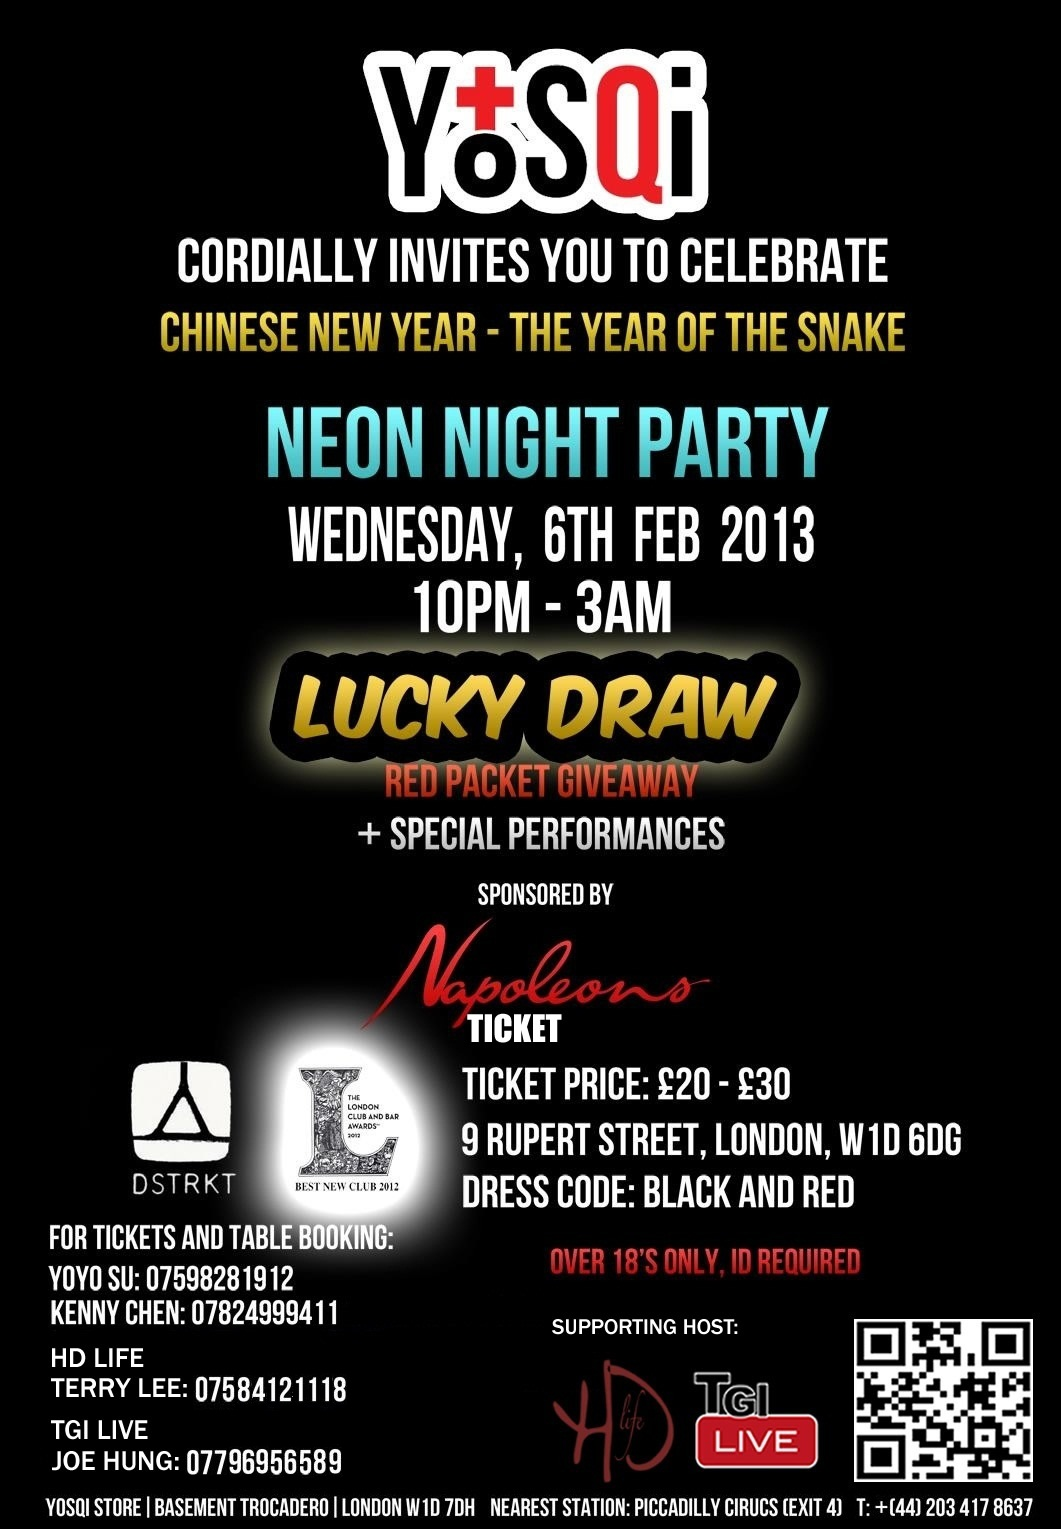 Chinese New Year Neon Night